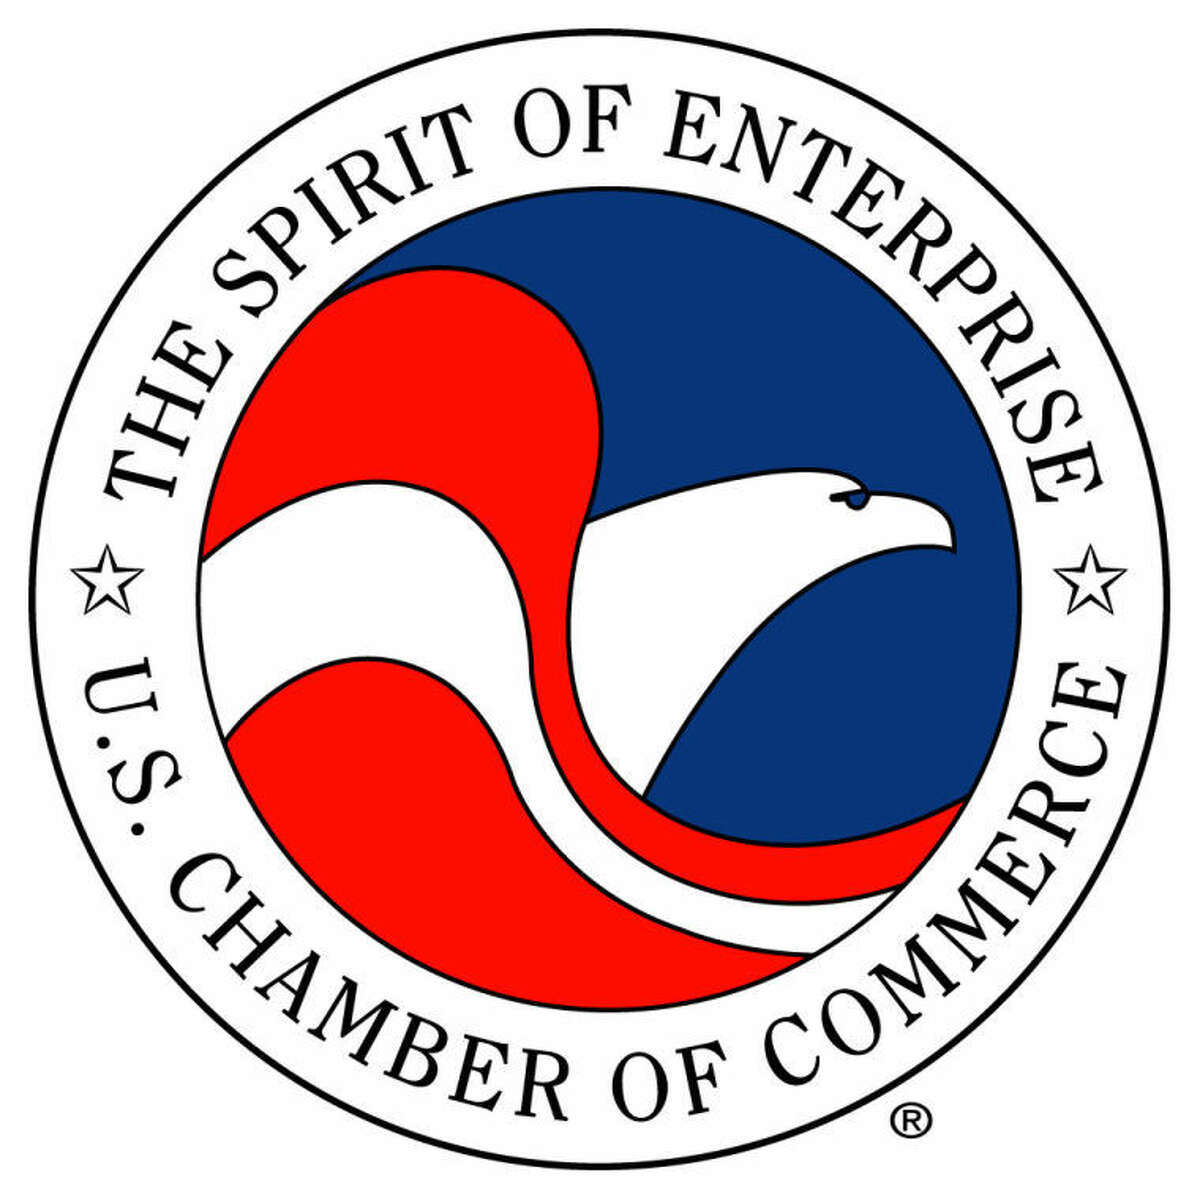 The U.S. Chamber of Commerce's Institute for Legal Reform released survey results last week revealing the 10